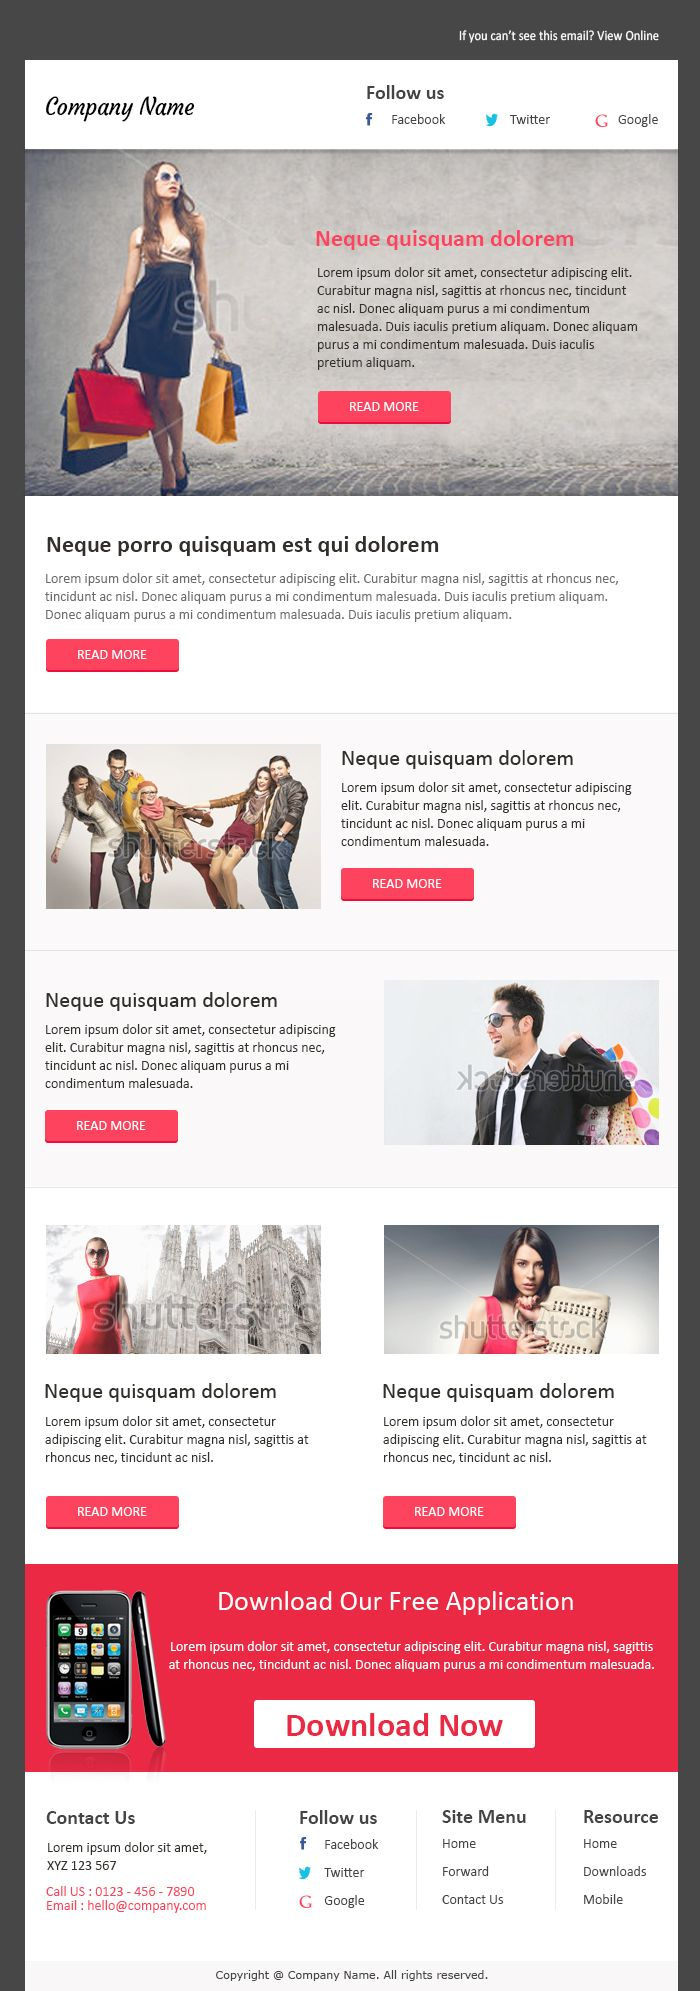 Best 25+ Email templates ideas on Pinterest | Email newsletter ...